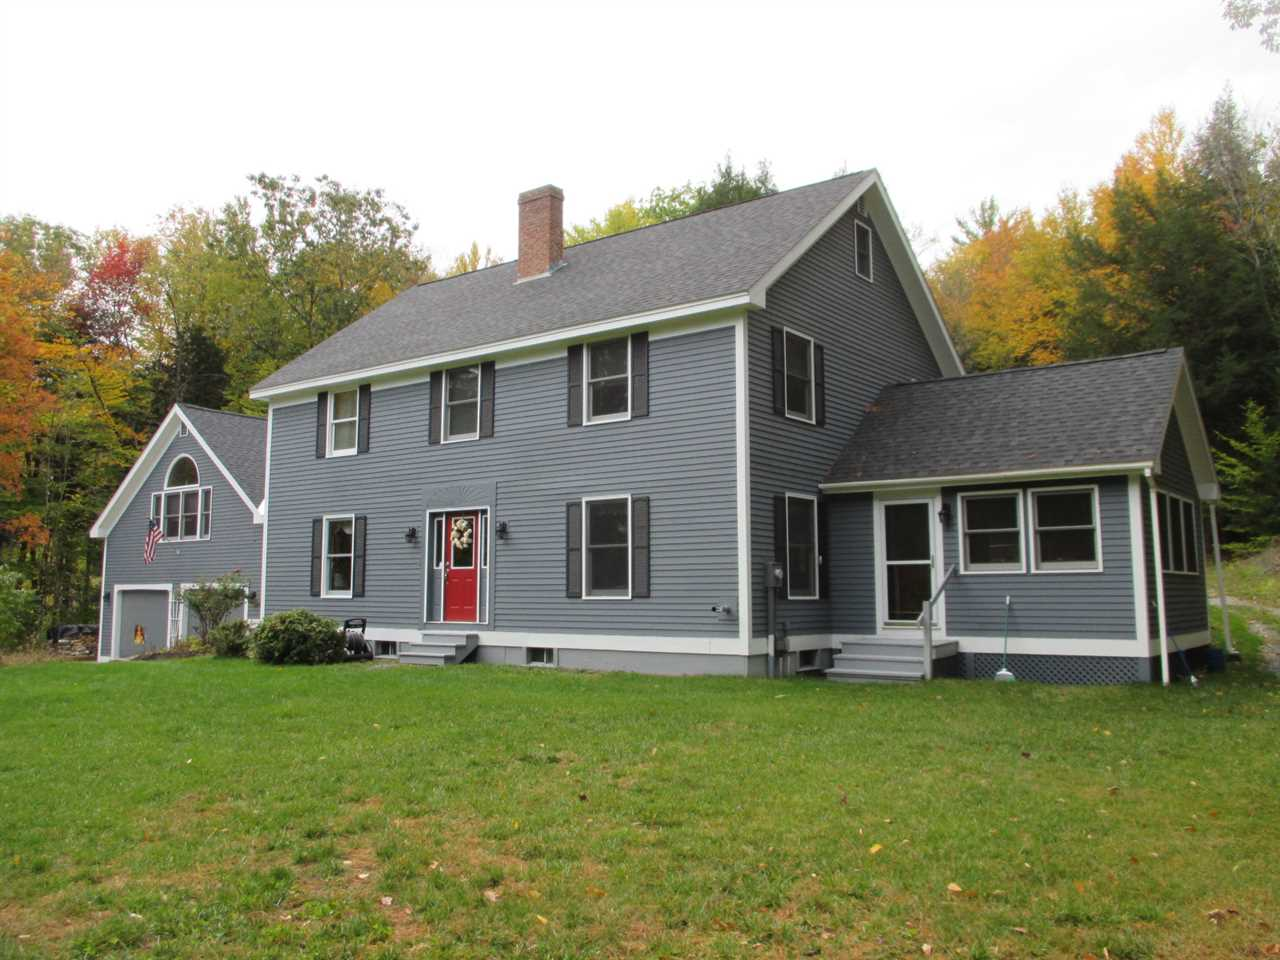 MLS 4781371: 126 Route 12A, Surry NH